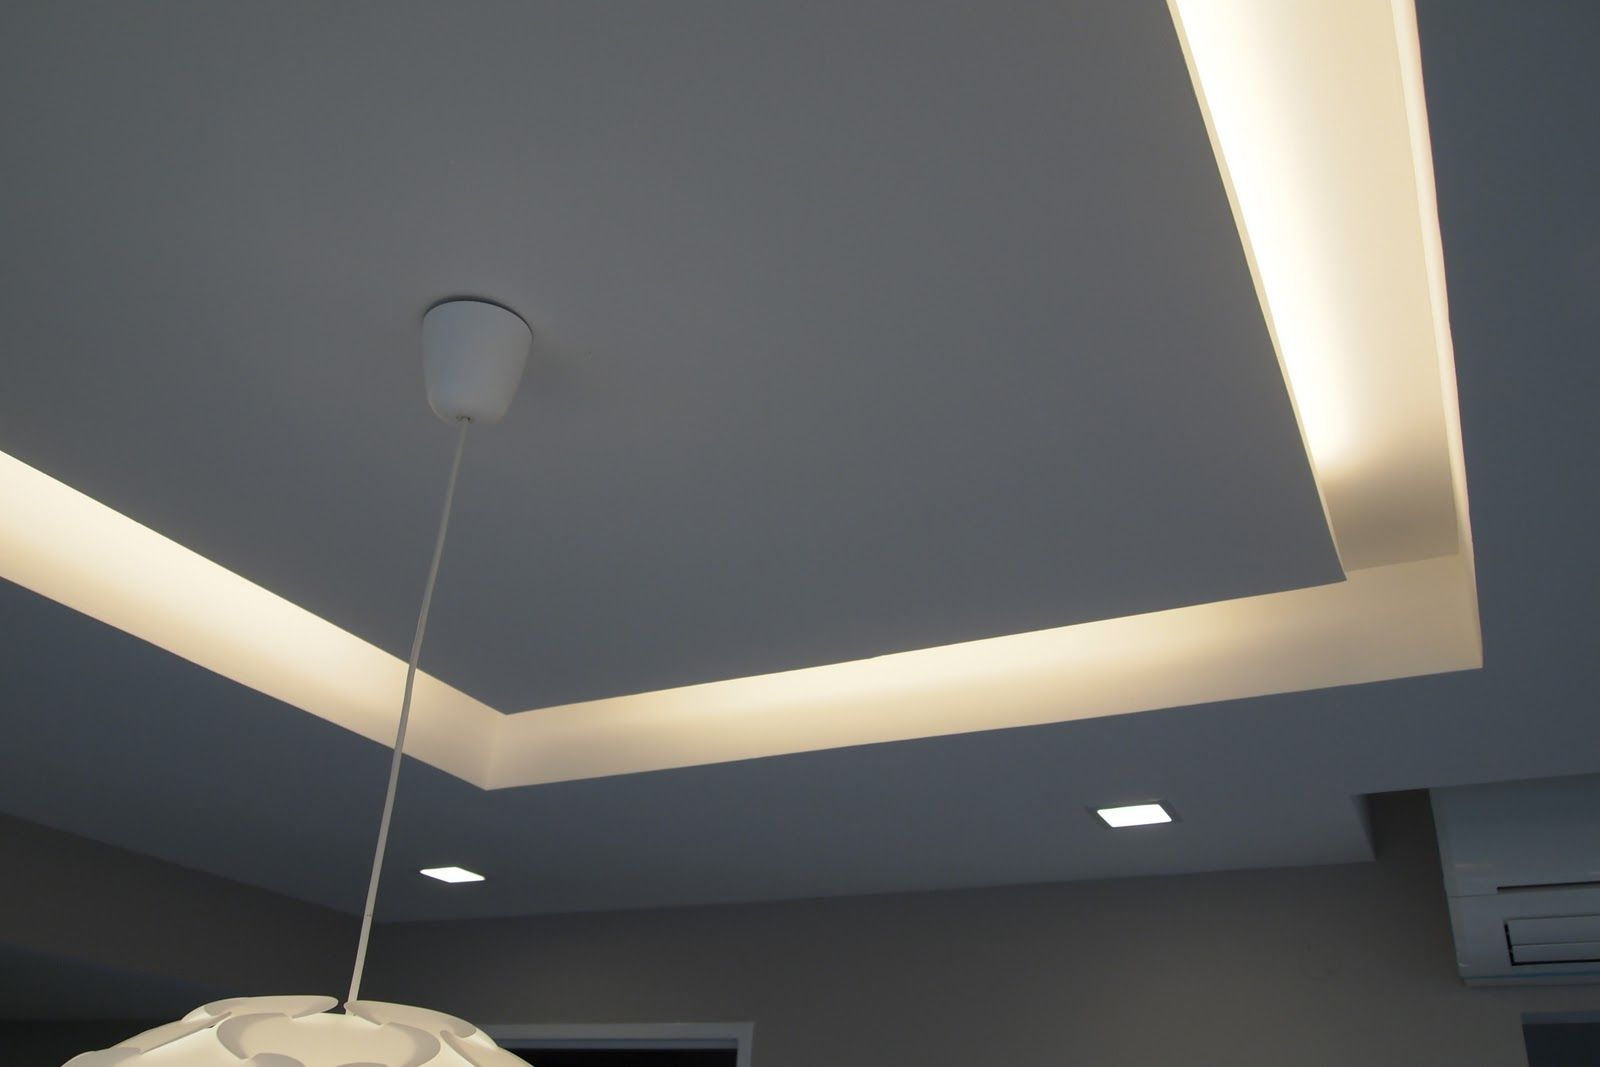 coved ceiling lighting ceiling trim coved ceiling living room th ceilings in 2018 pinterest